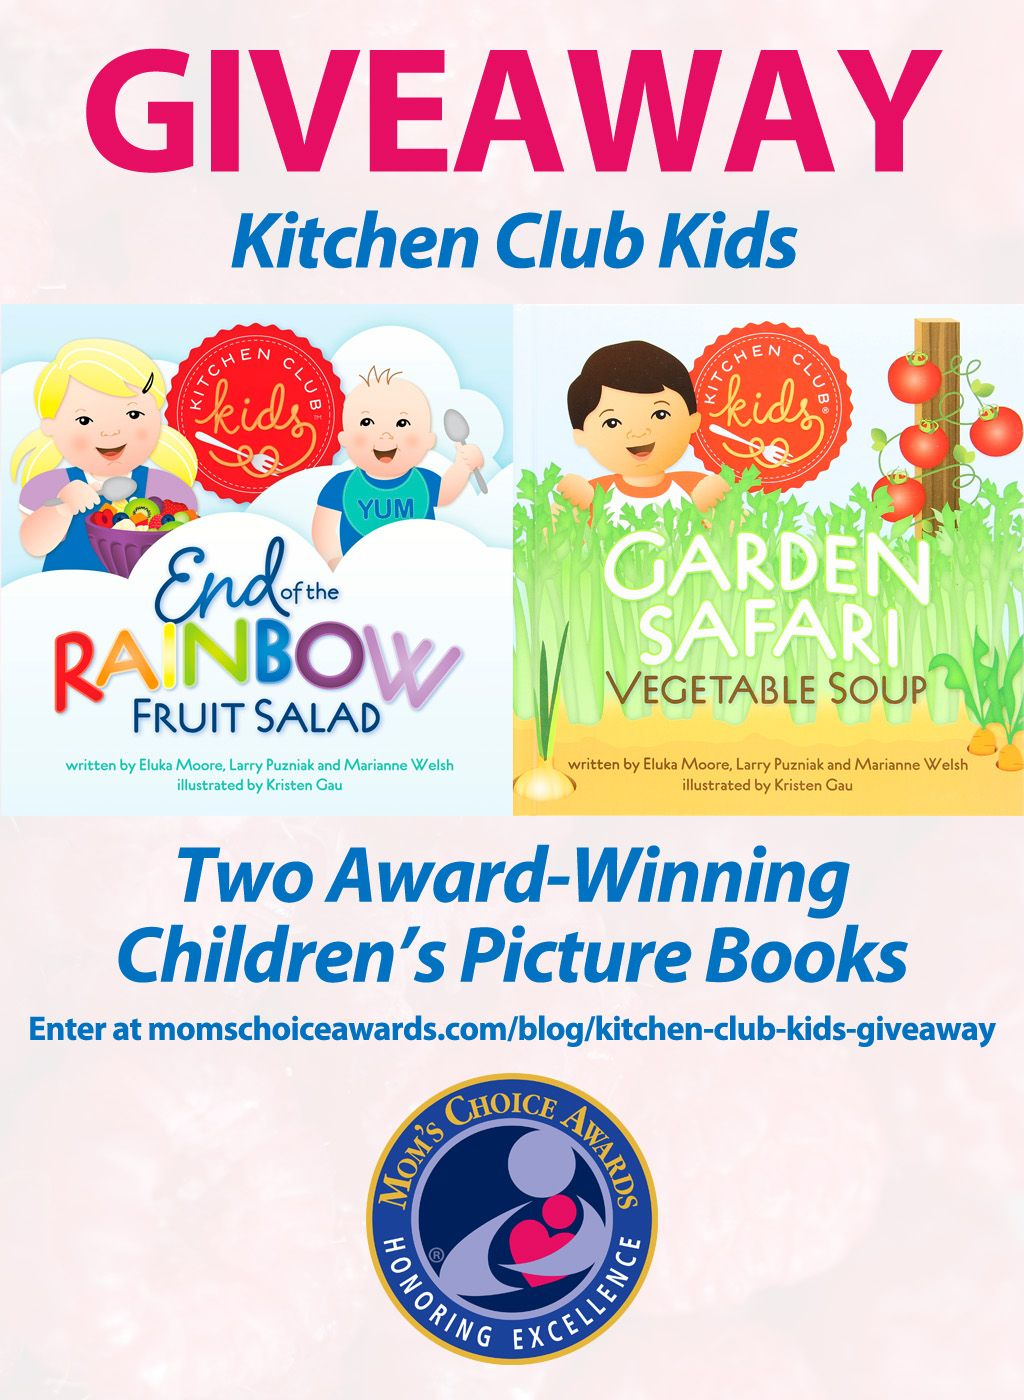 I just entered to win this award-winning book series from @kitchenclubkids! You can enter on the @MomsChoiceAward blog!